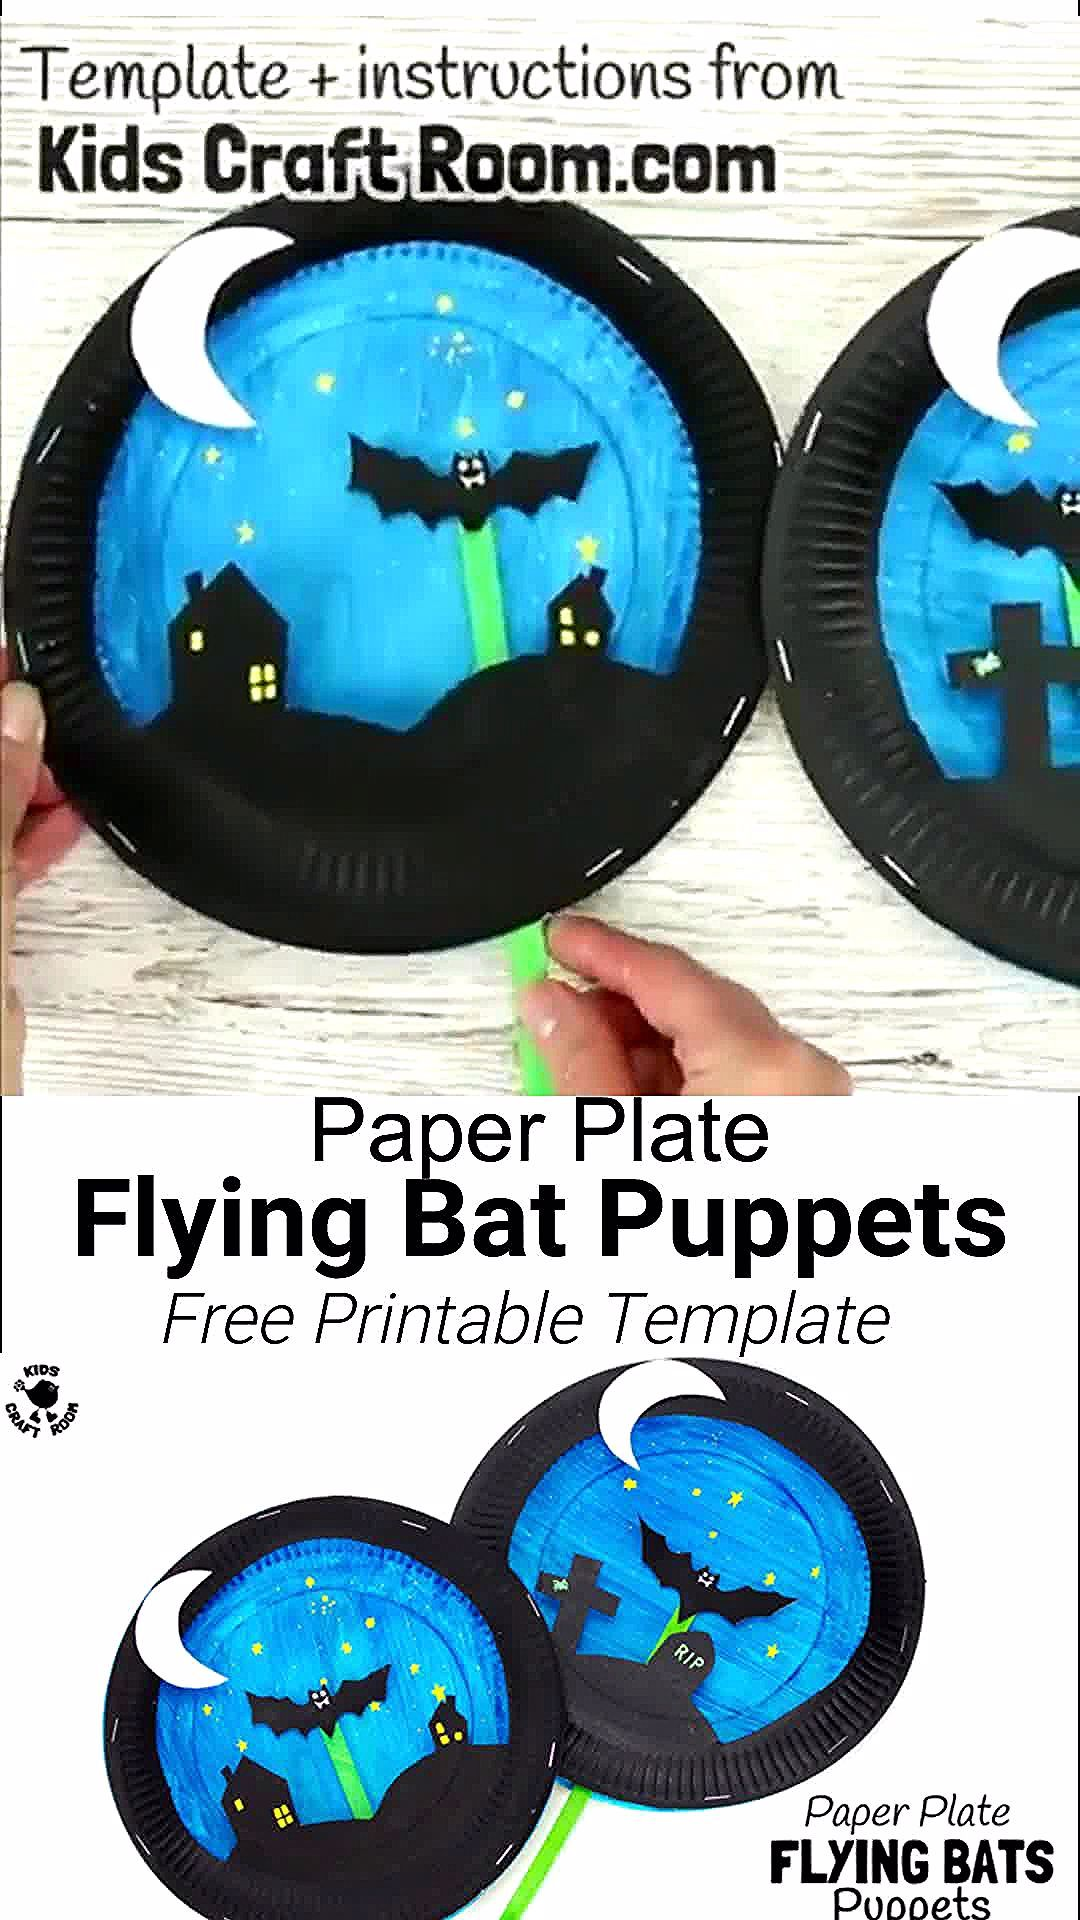 PAPER PLATE BAT PUPPETS - (Free printable templates) Such a fun Halloween craft for kids! This interactive paper plate craft has a bat puppet that flies in a night sky. A great bat craft to inspire imaginative play and story telling. #kidscraftroom #PaperPlateCrafts #HalloweenCrafts #batcrafts #bats #kidscrafts #kidscraft #halloween #halloweendecorations #puppets #paperplates #halloweenkids #freeprintable #freetemplate #printables